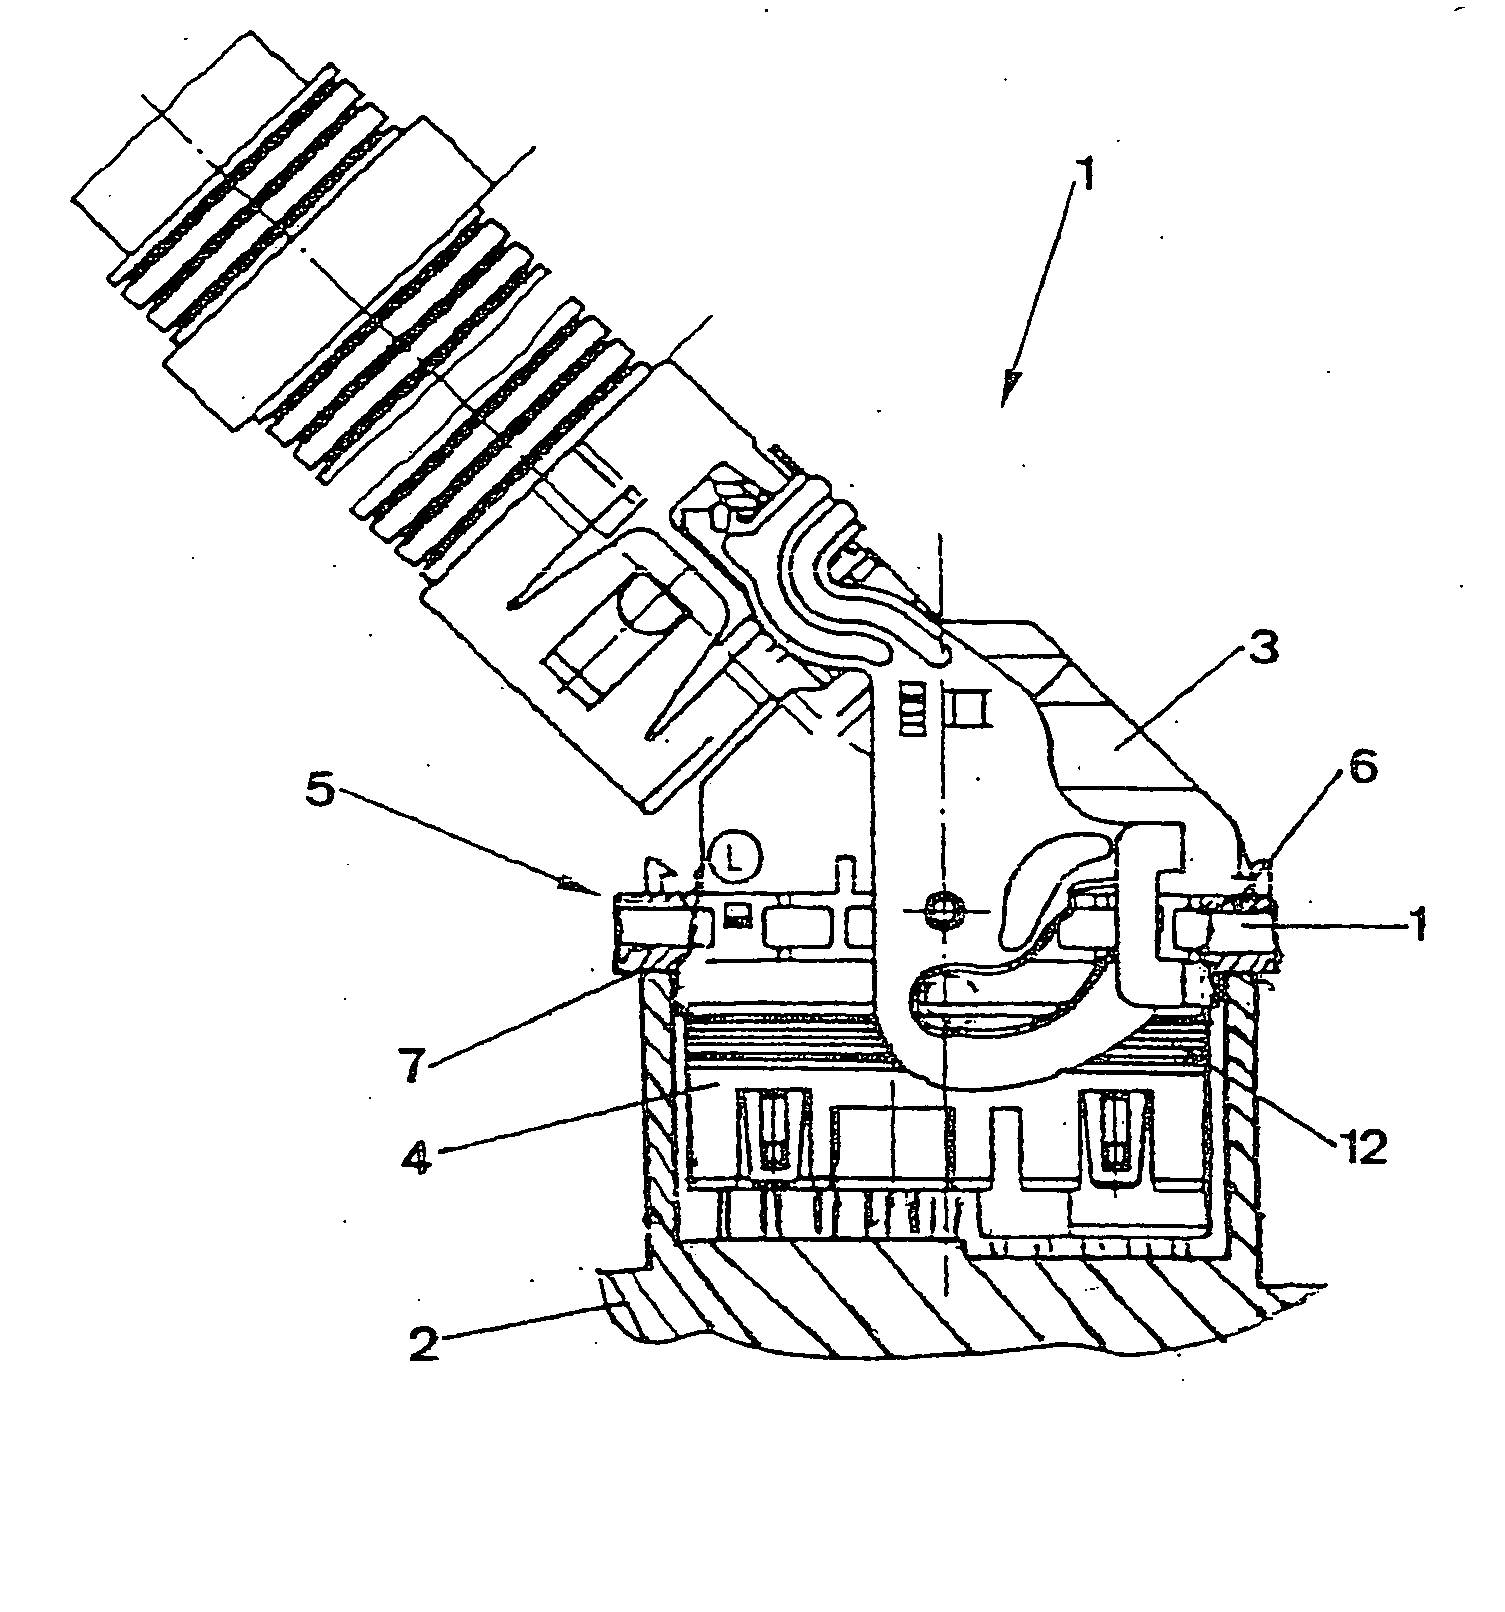 brevet us20040180565 cable form connector with a circumferential Deutsch Connectors patent drawing